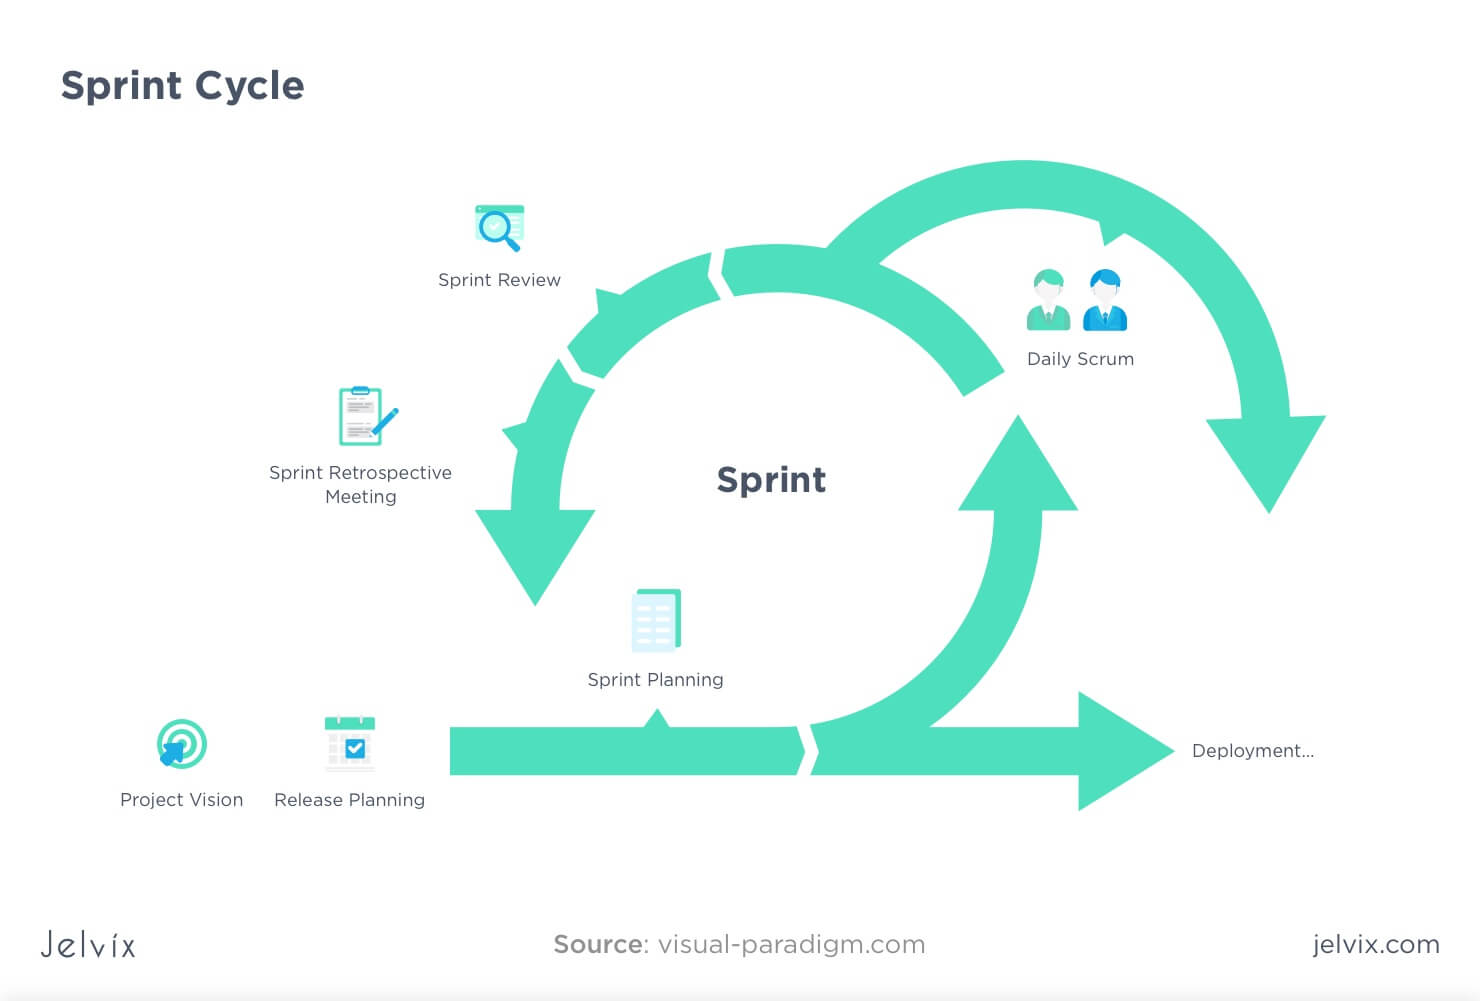 XP and Scrum sprints